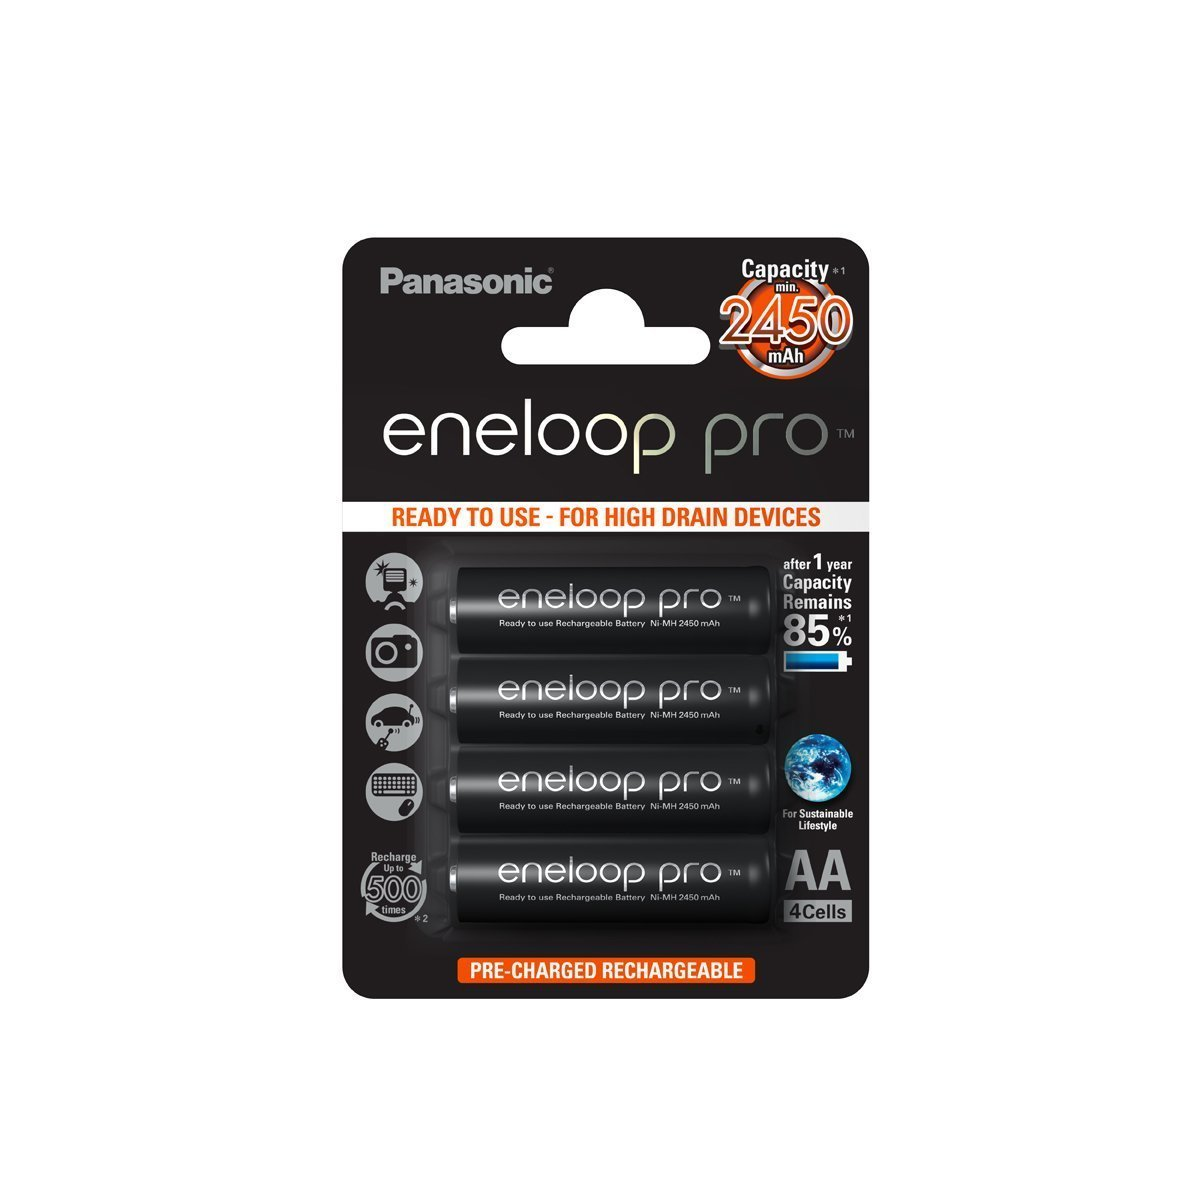 Panasonic Eneloop Pro Rechargeable Ready to use Battery AA 4 Pack